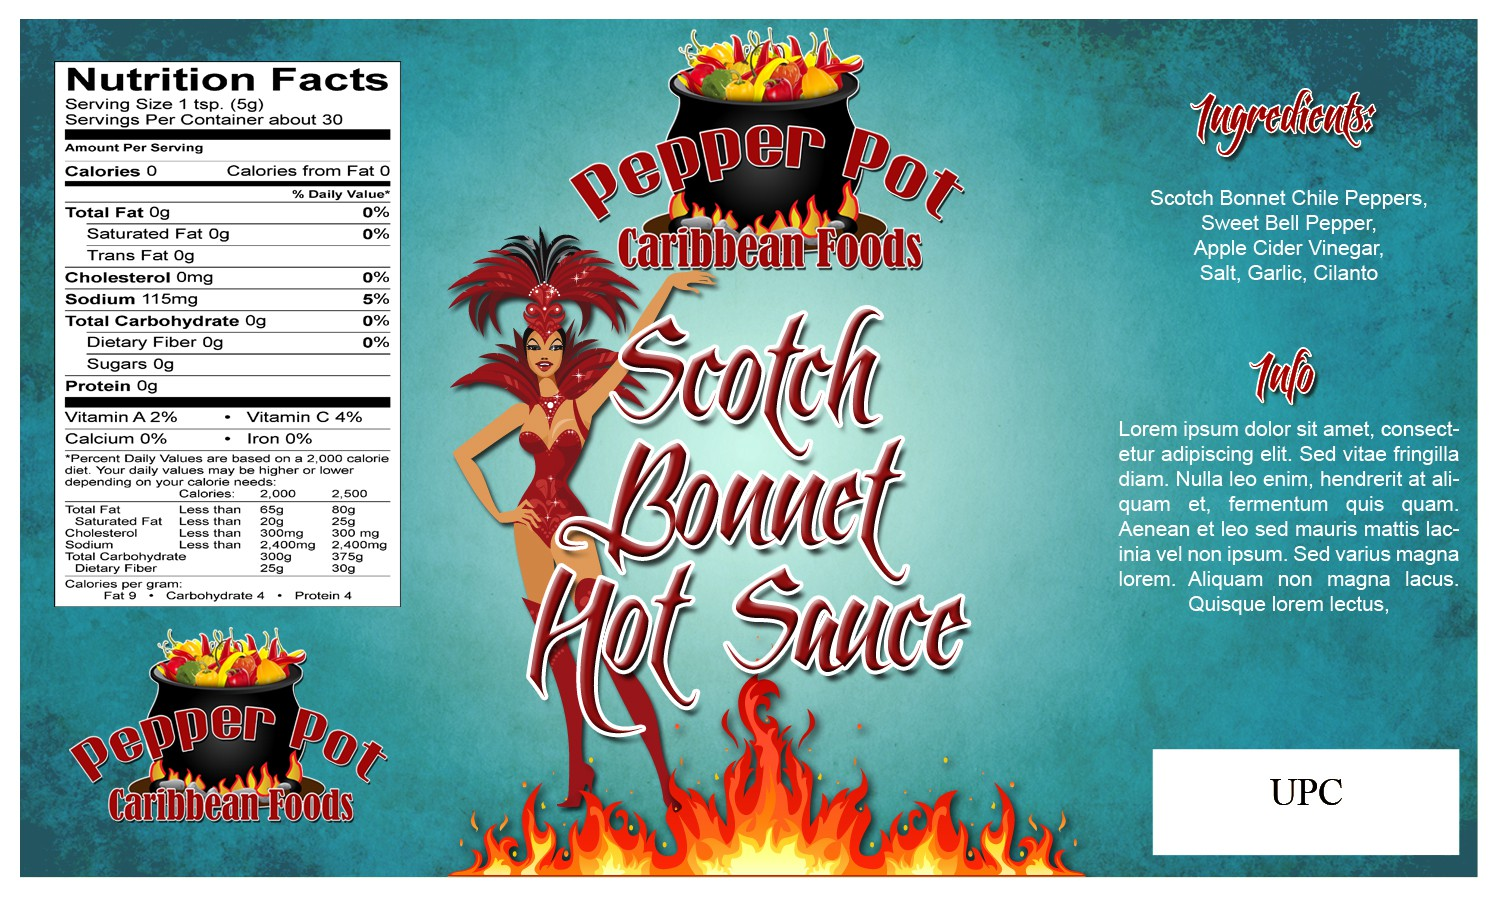 Help PEPPER POT CARIBBEAN FOODS, LLC. with a new product label